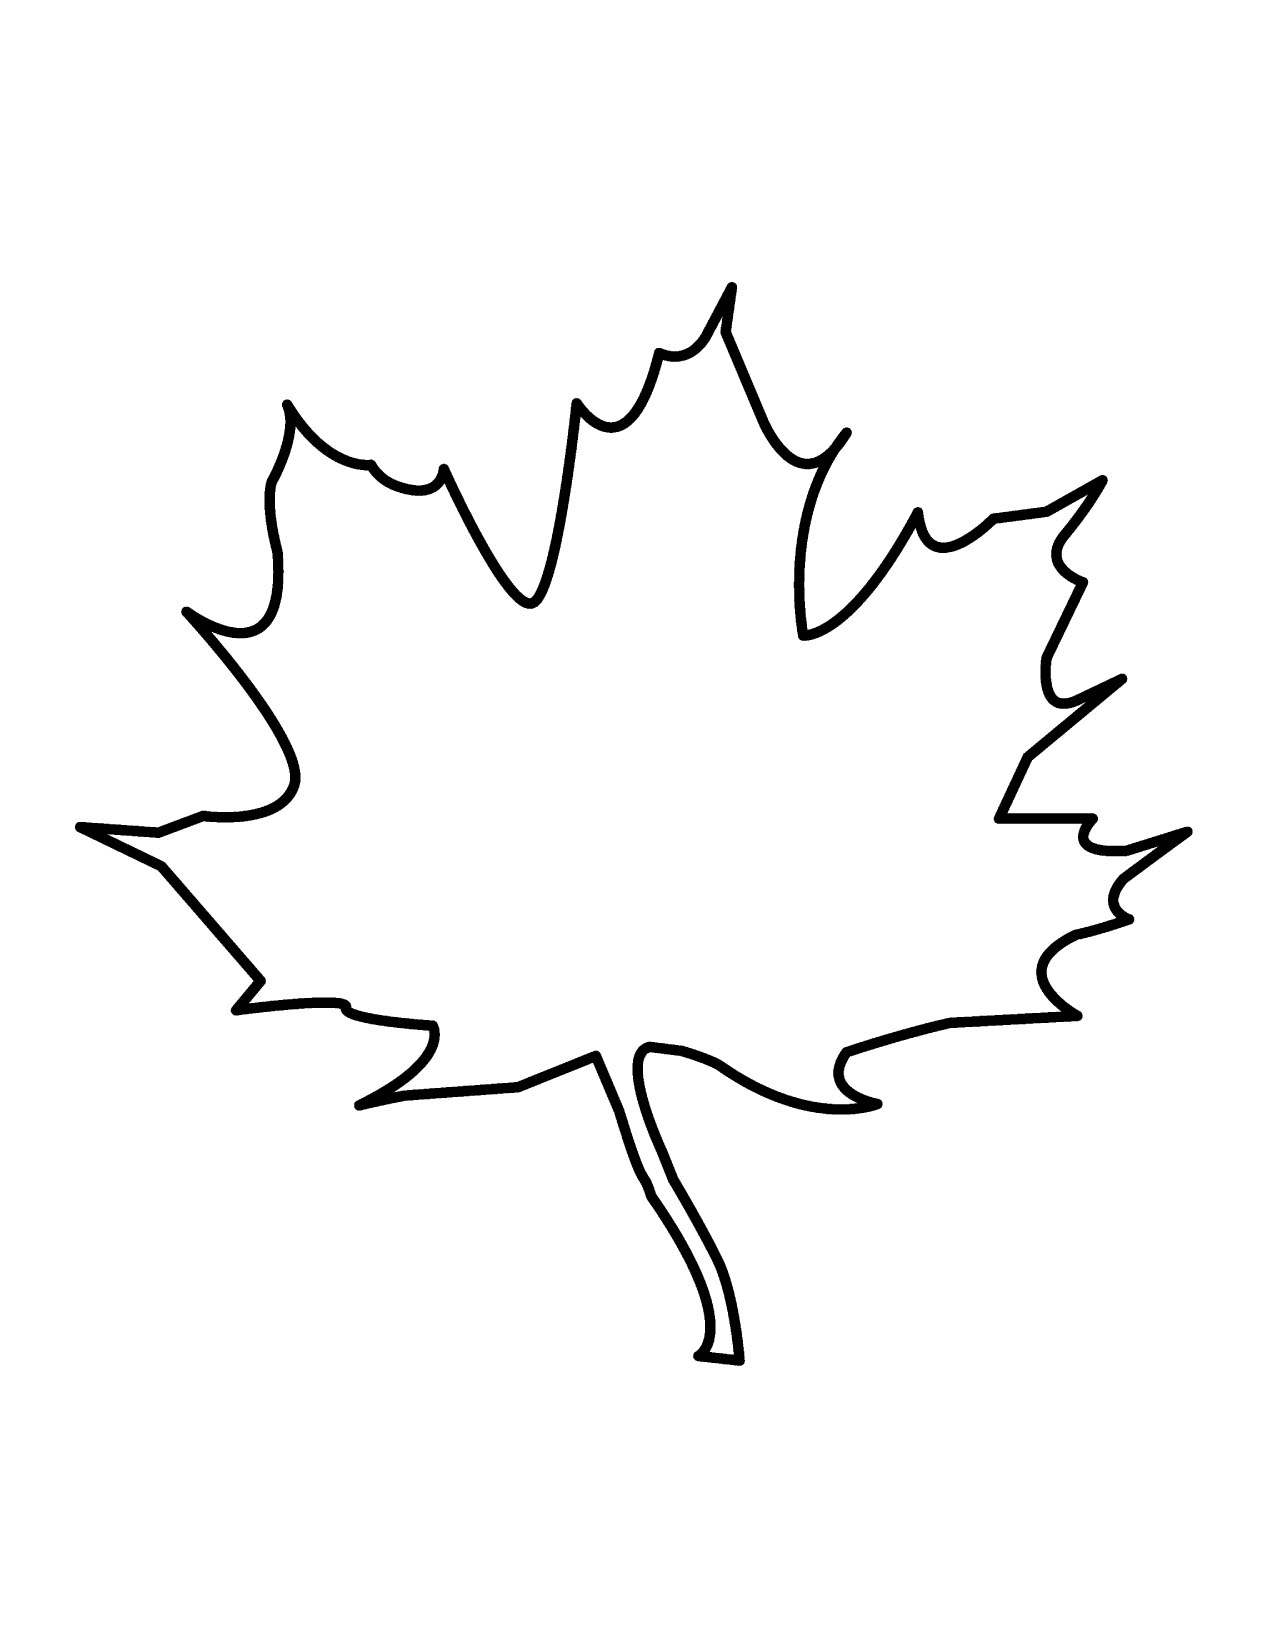 18 Fall Leaves Outline Free Cliparts That You Can Download To You